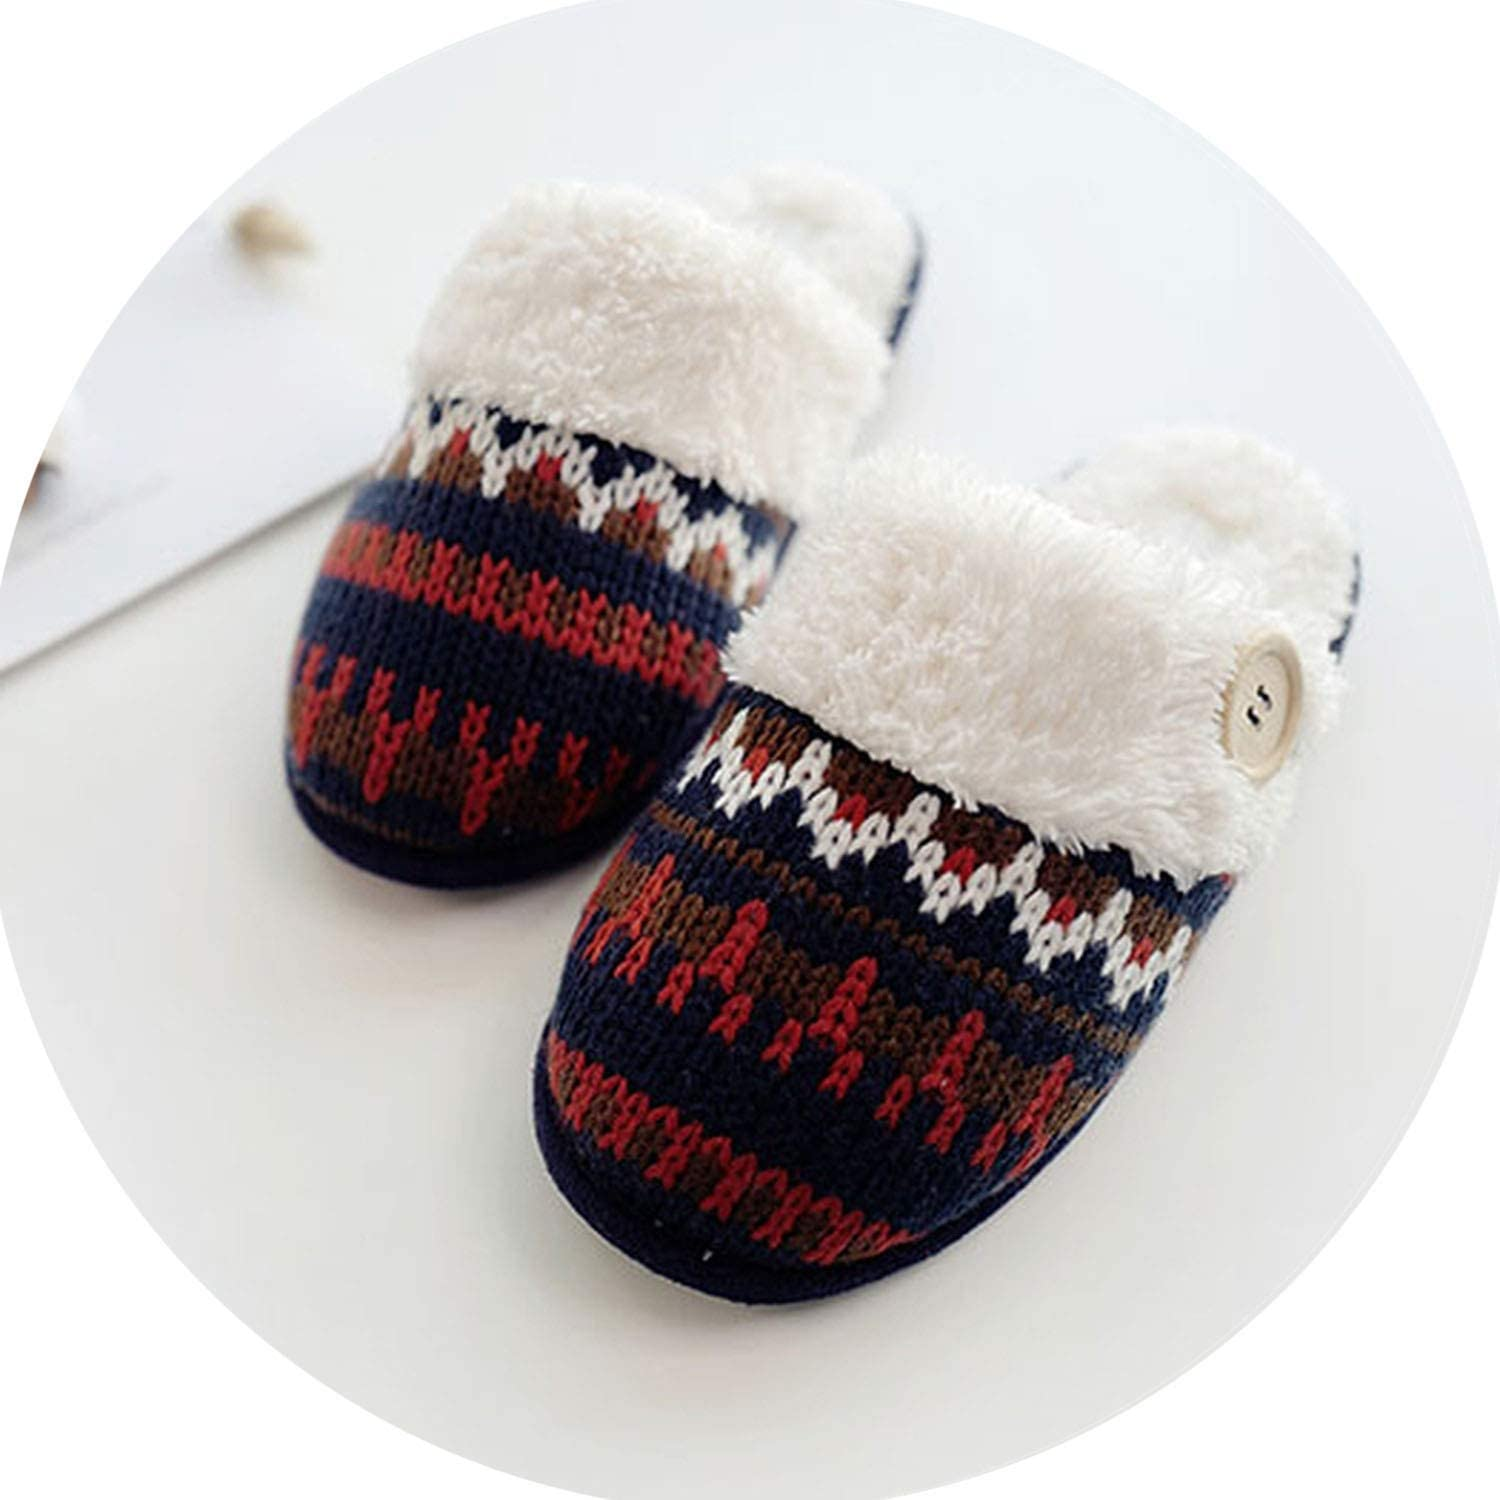 Footwear Bedroom Winter Fashion shoes 2018 Women Slippers House Home Plush Slides Indoor Fur Furry